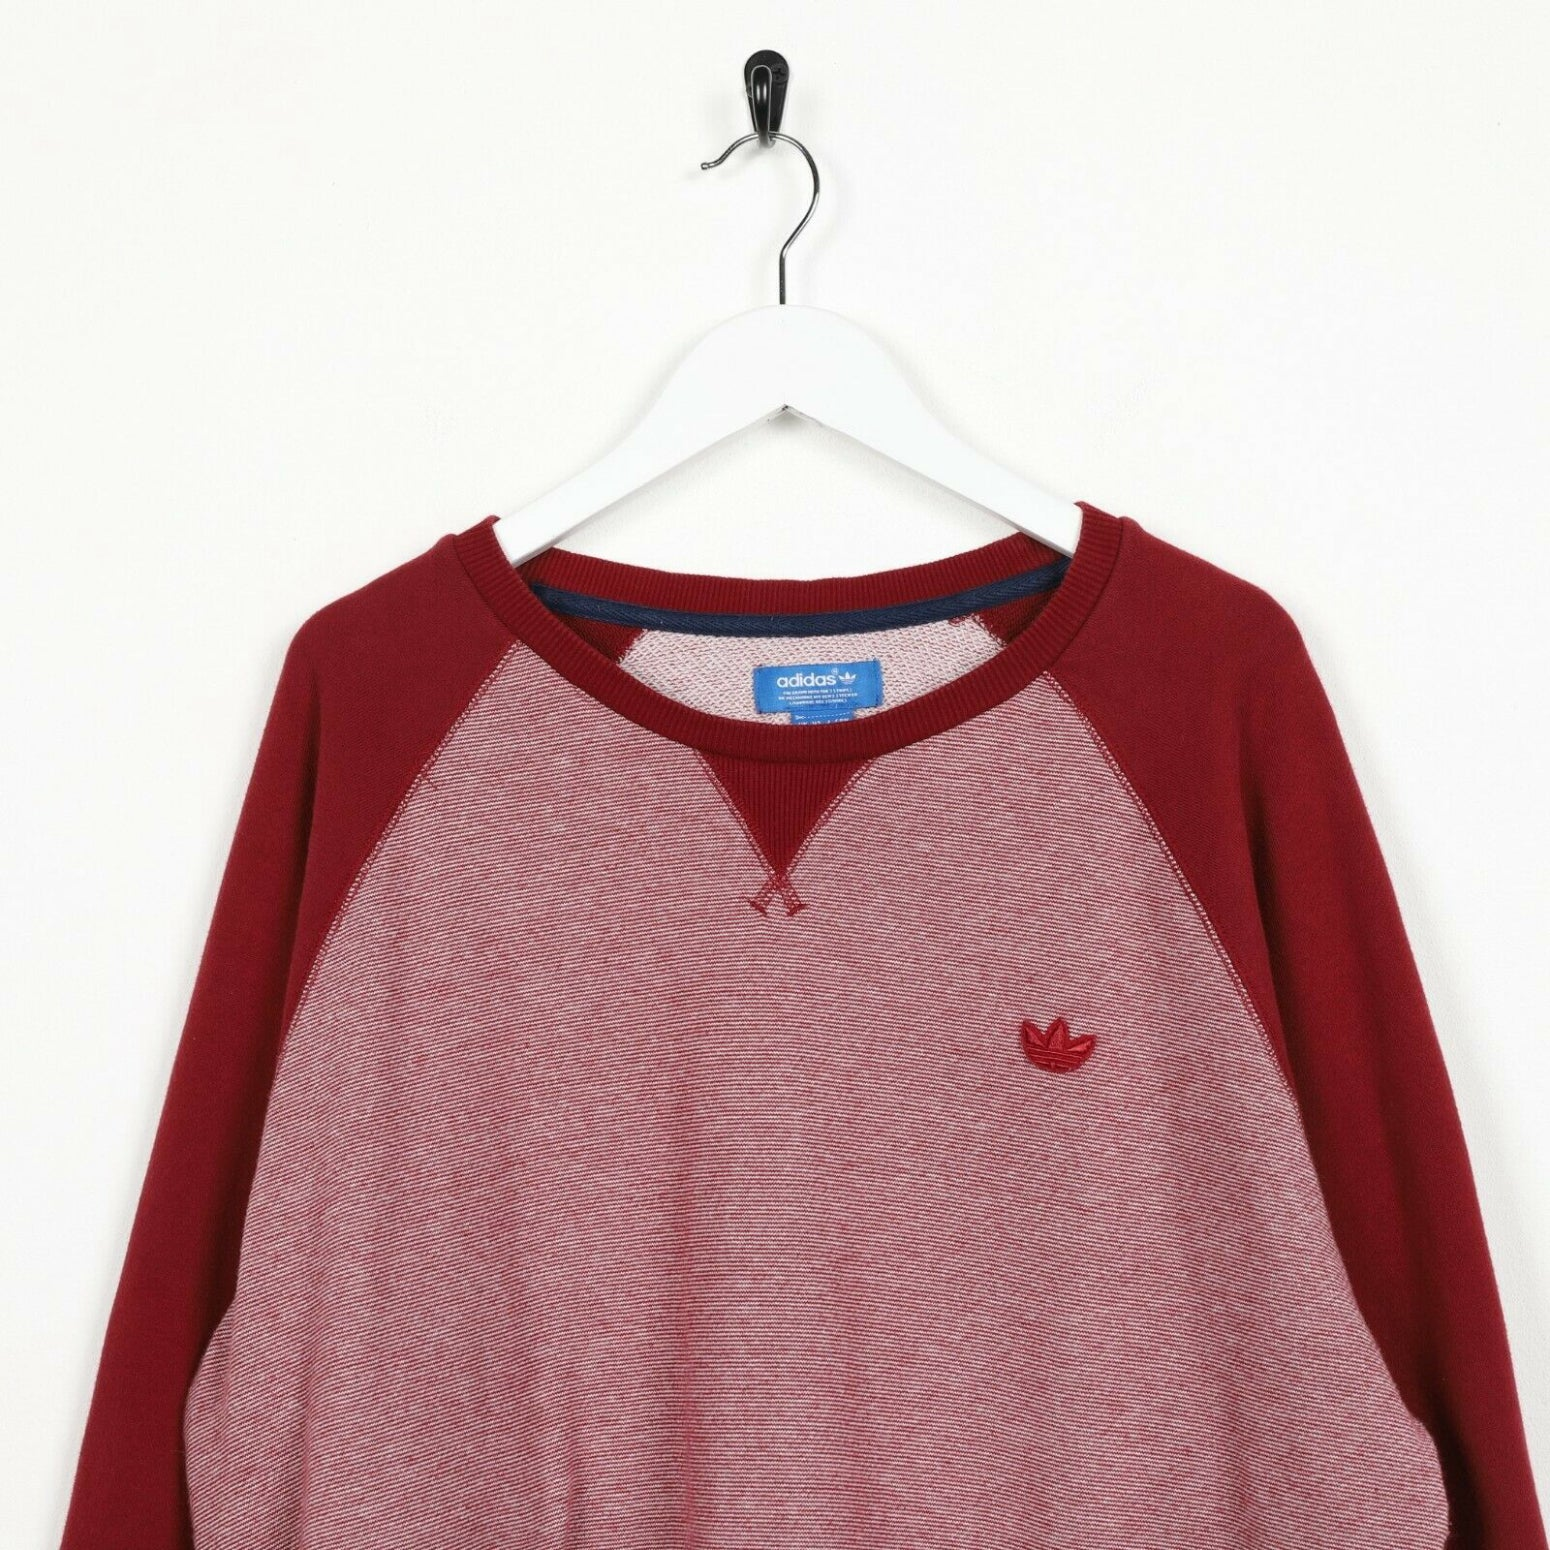 Vintage ADIDAS ORIGINALS Small Logo Sweatshirt Jumper Red XL